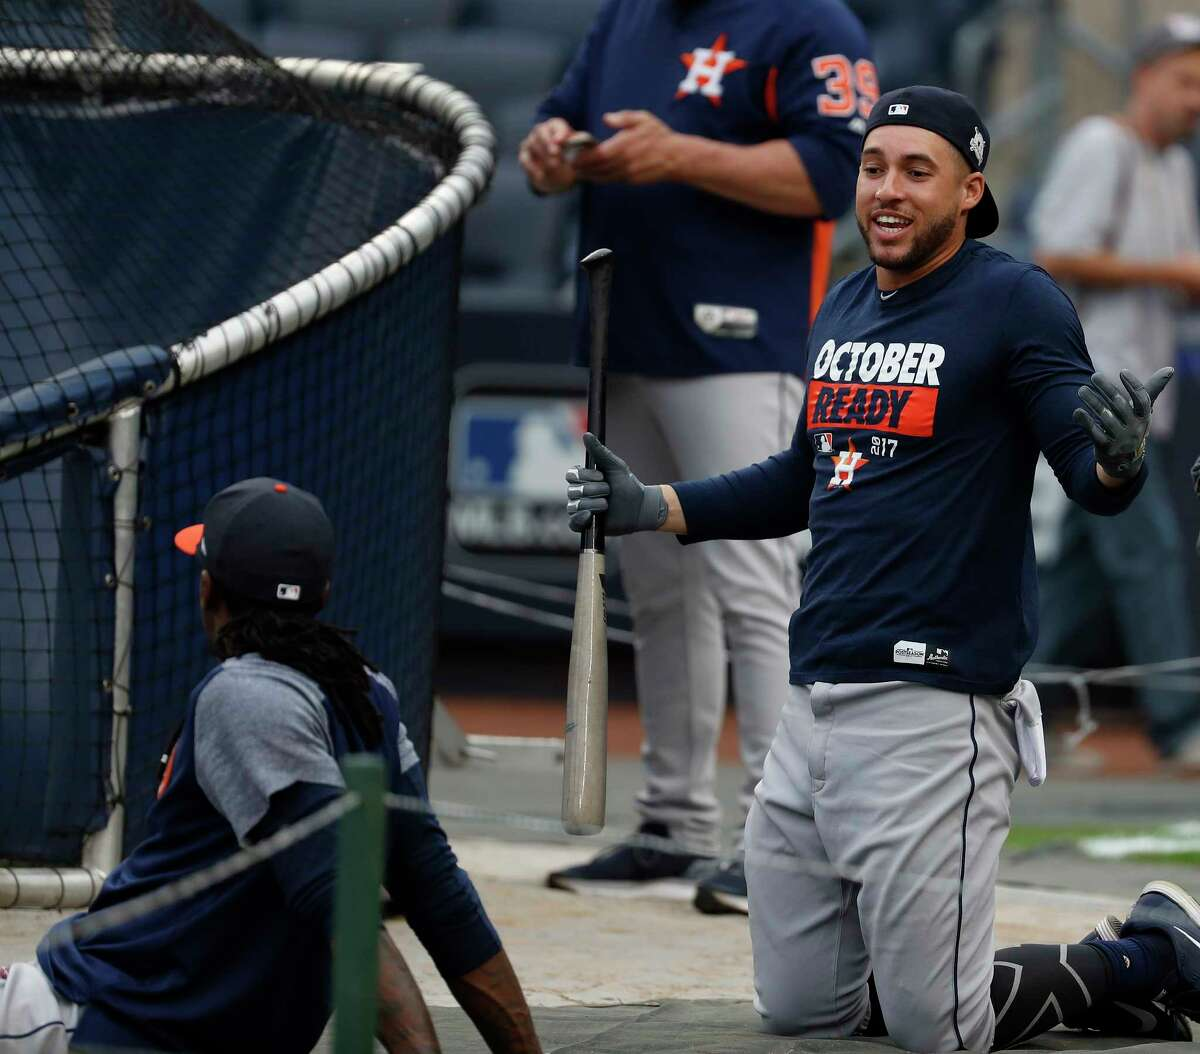 Houston Astros center fielder George Springer talks with Cameron Maybin during the Astros workout at Yankee Stadium, Sunday Oct. 15, 2017, in Houston.